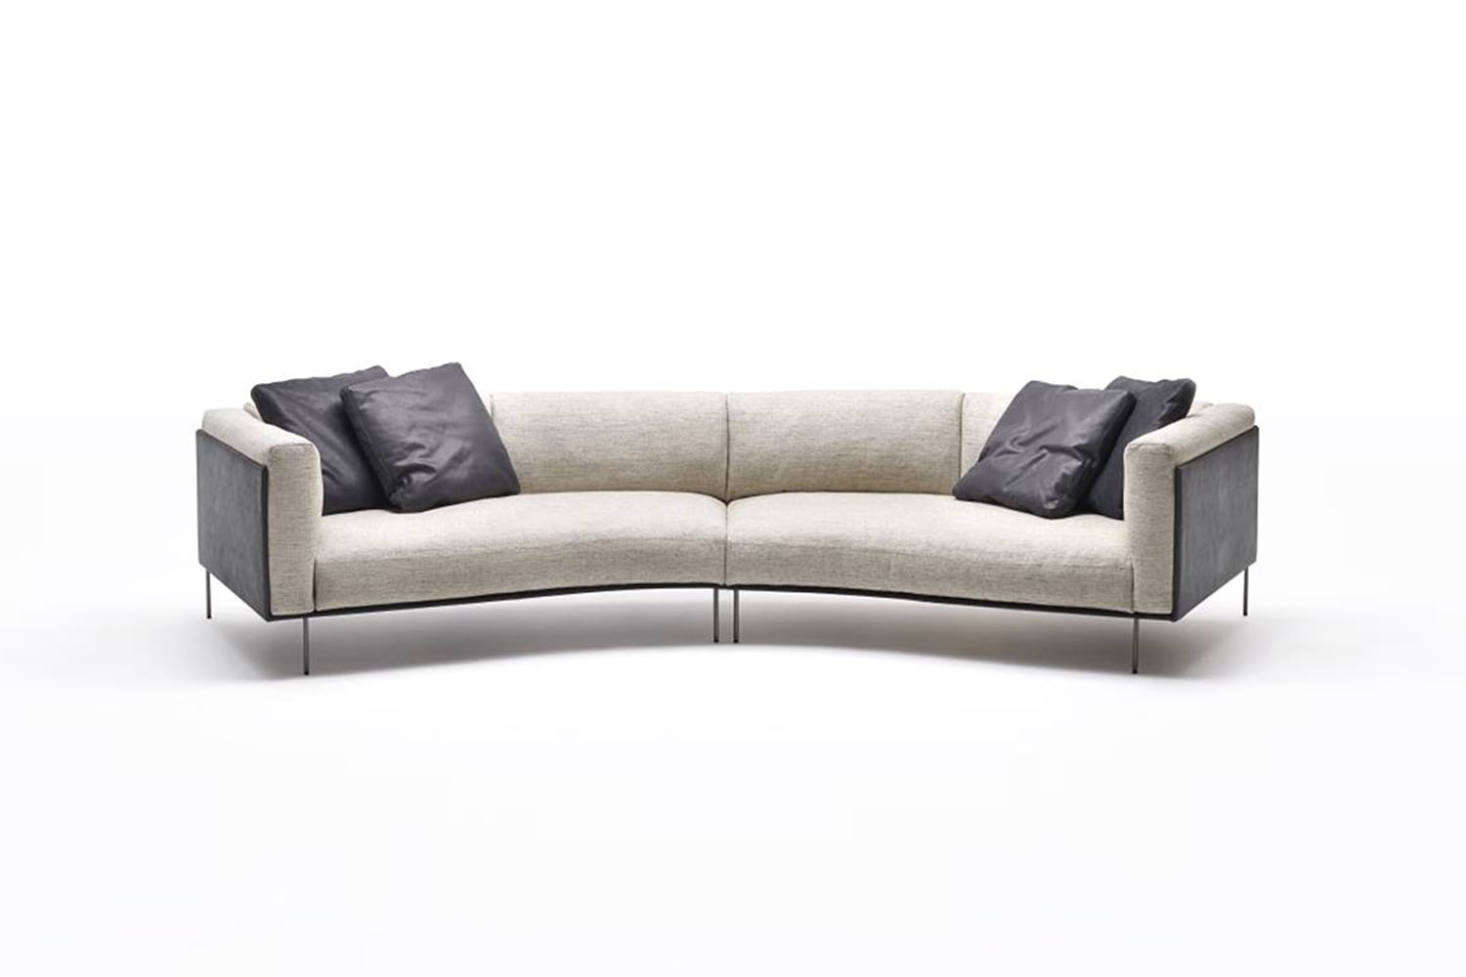 10 Easy Pieces Curved Sofas Remodelista